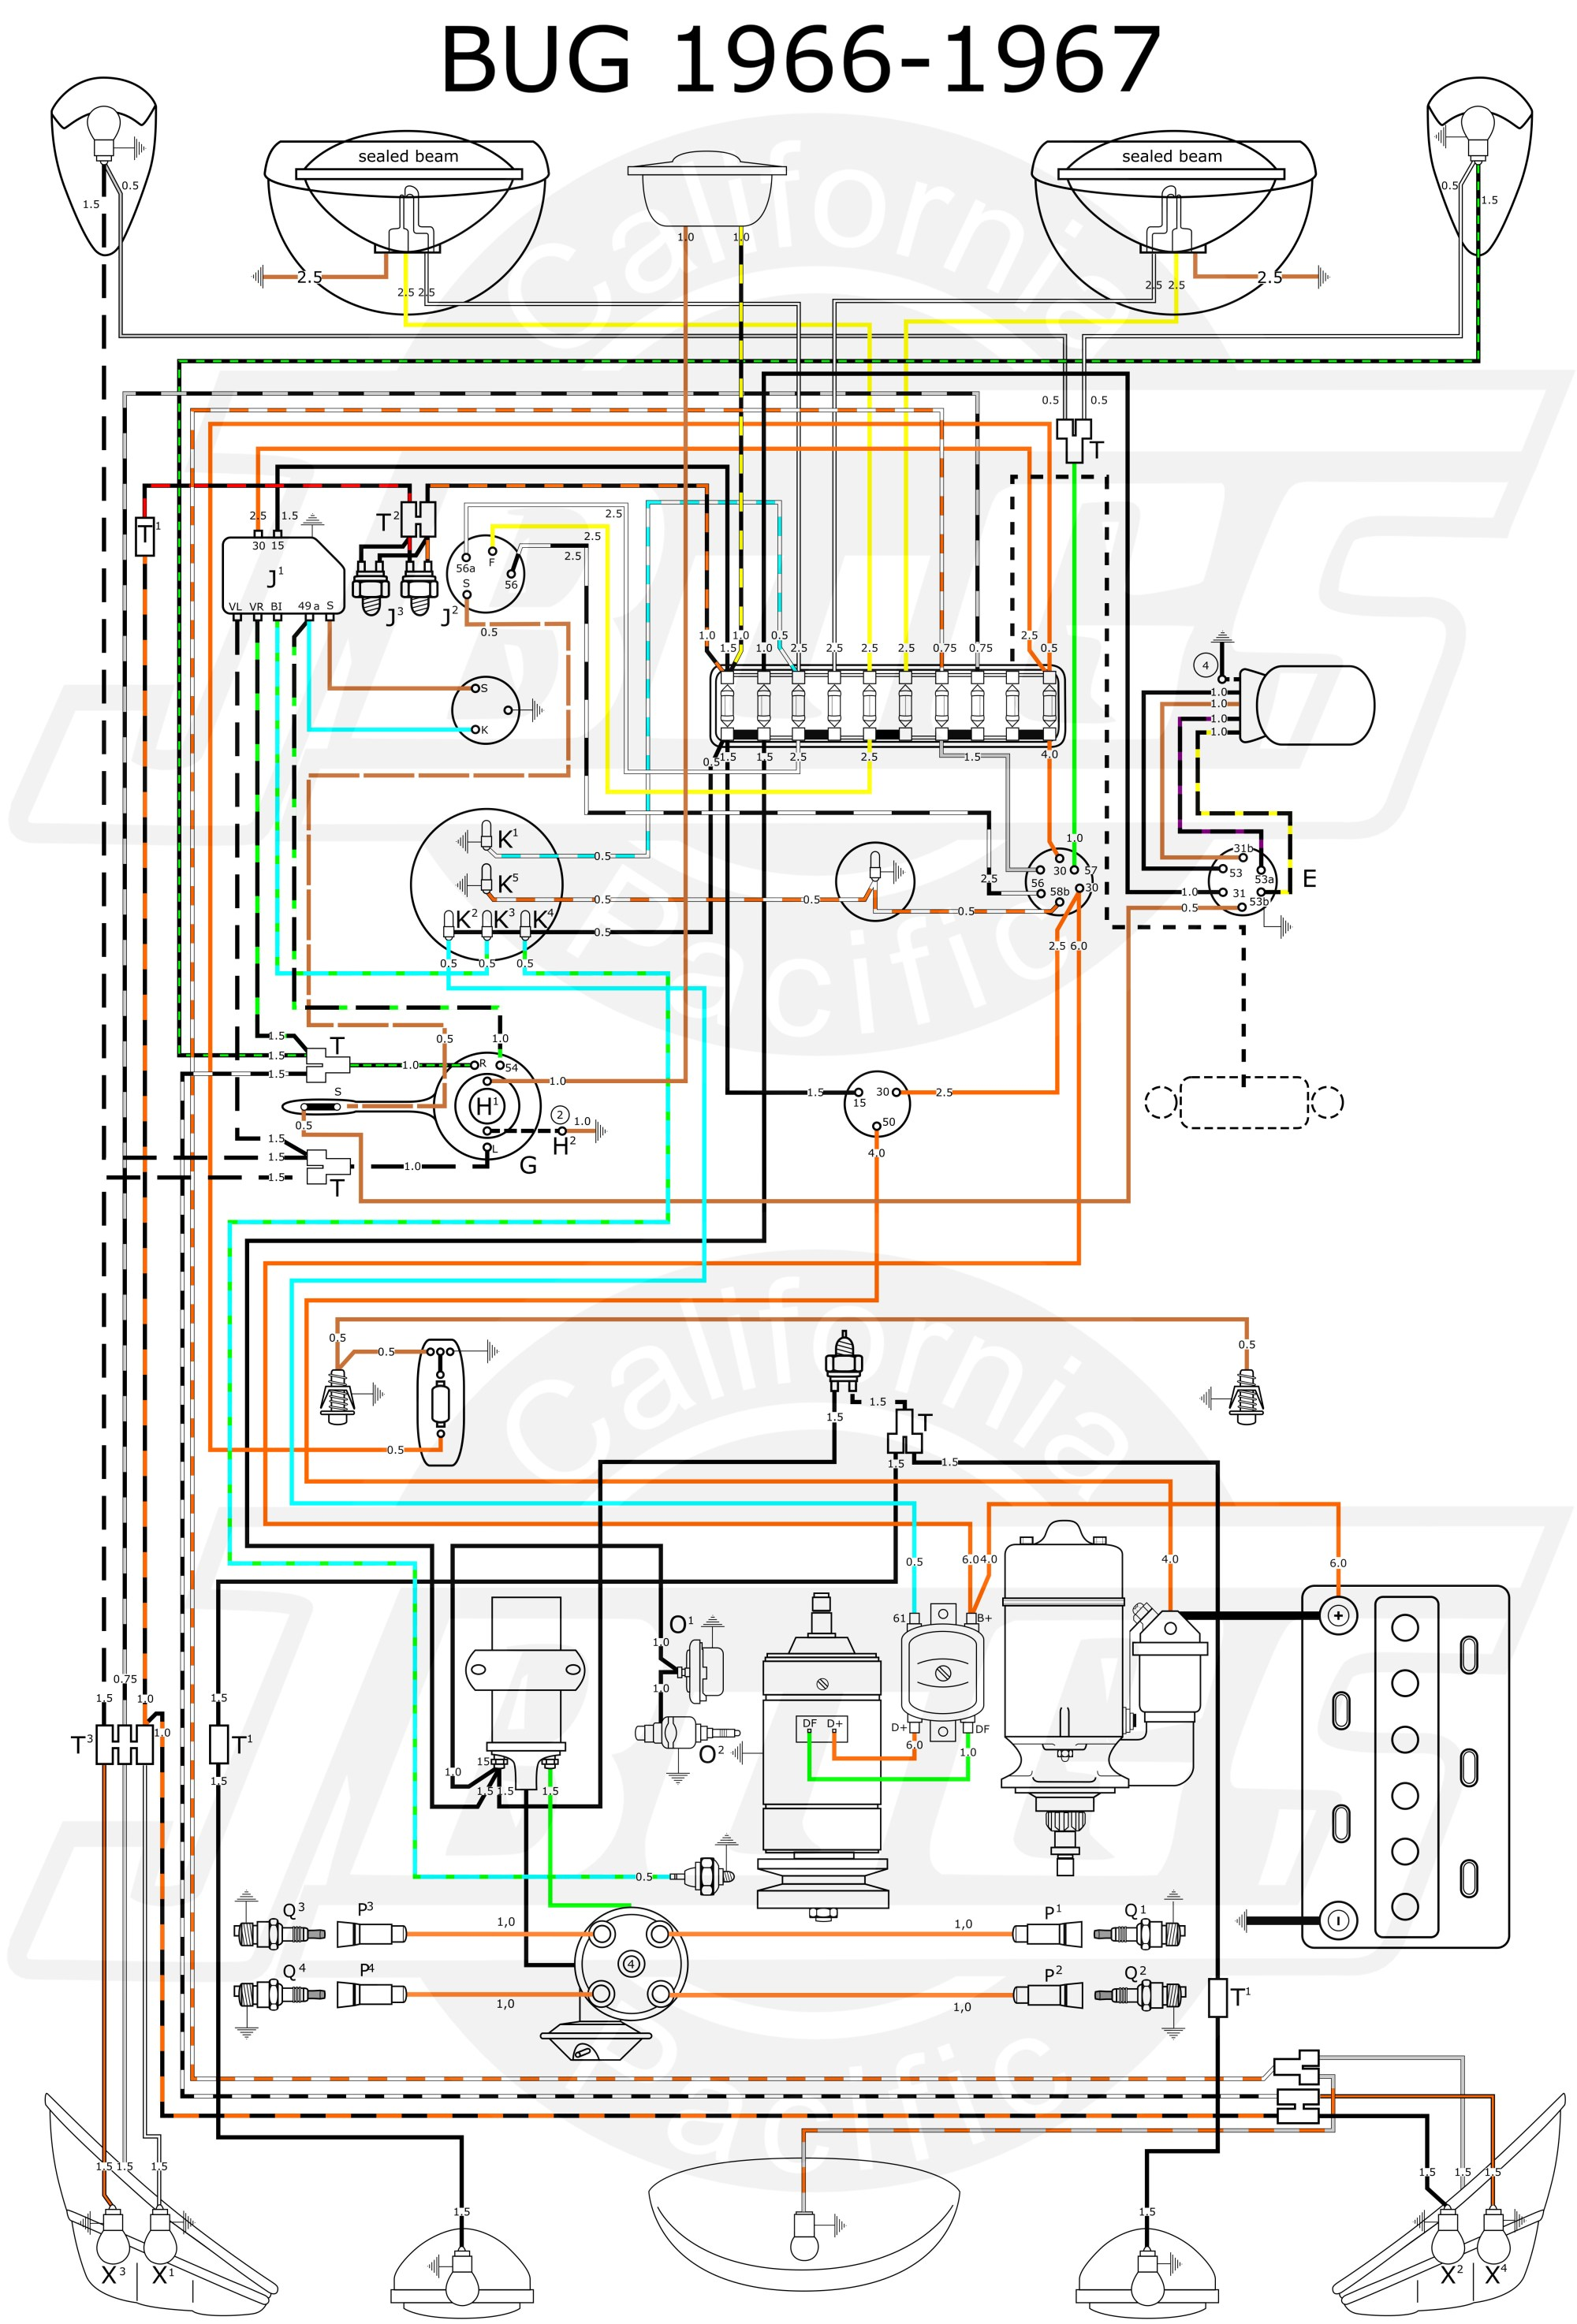 hight resolution of 1973 fiat wiring diagram schema wiring diagram 1973 fiat 1300 wiring diagram